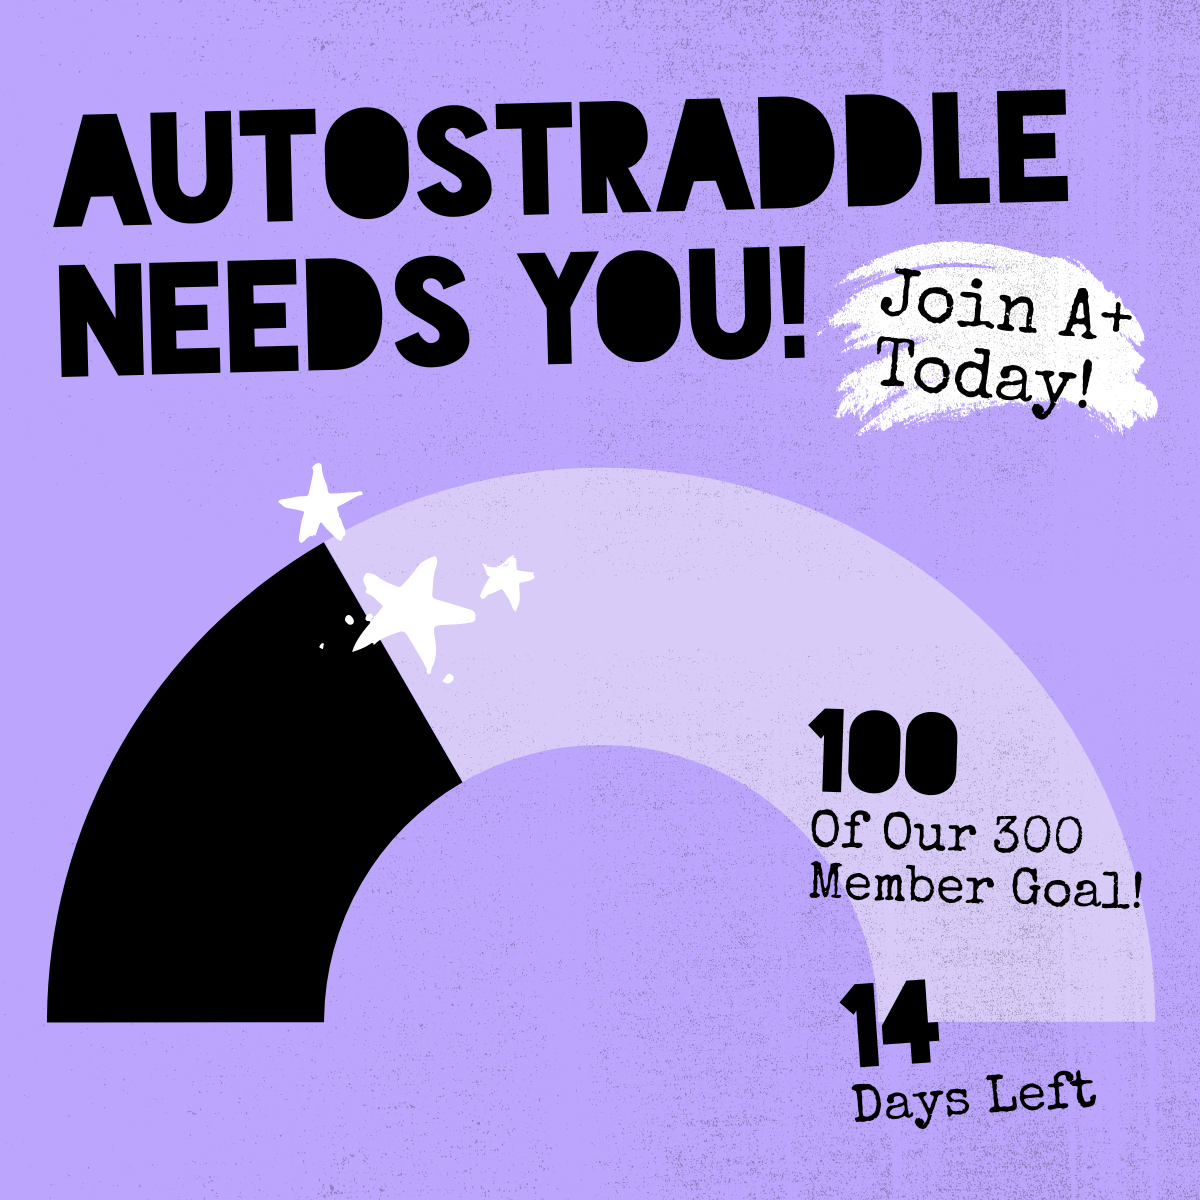 Autostraddle Needs You! Join A+ Today! 100 of our 300 member goal! 14 days left